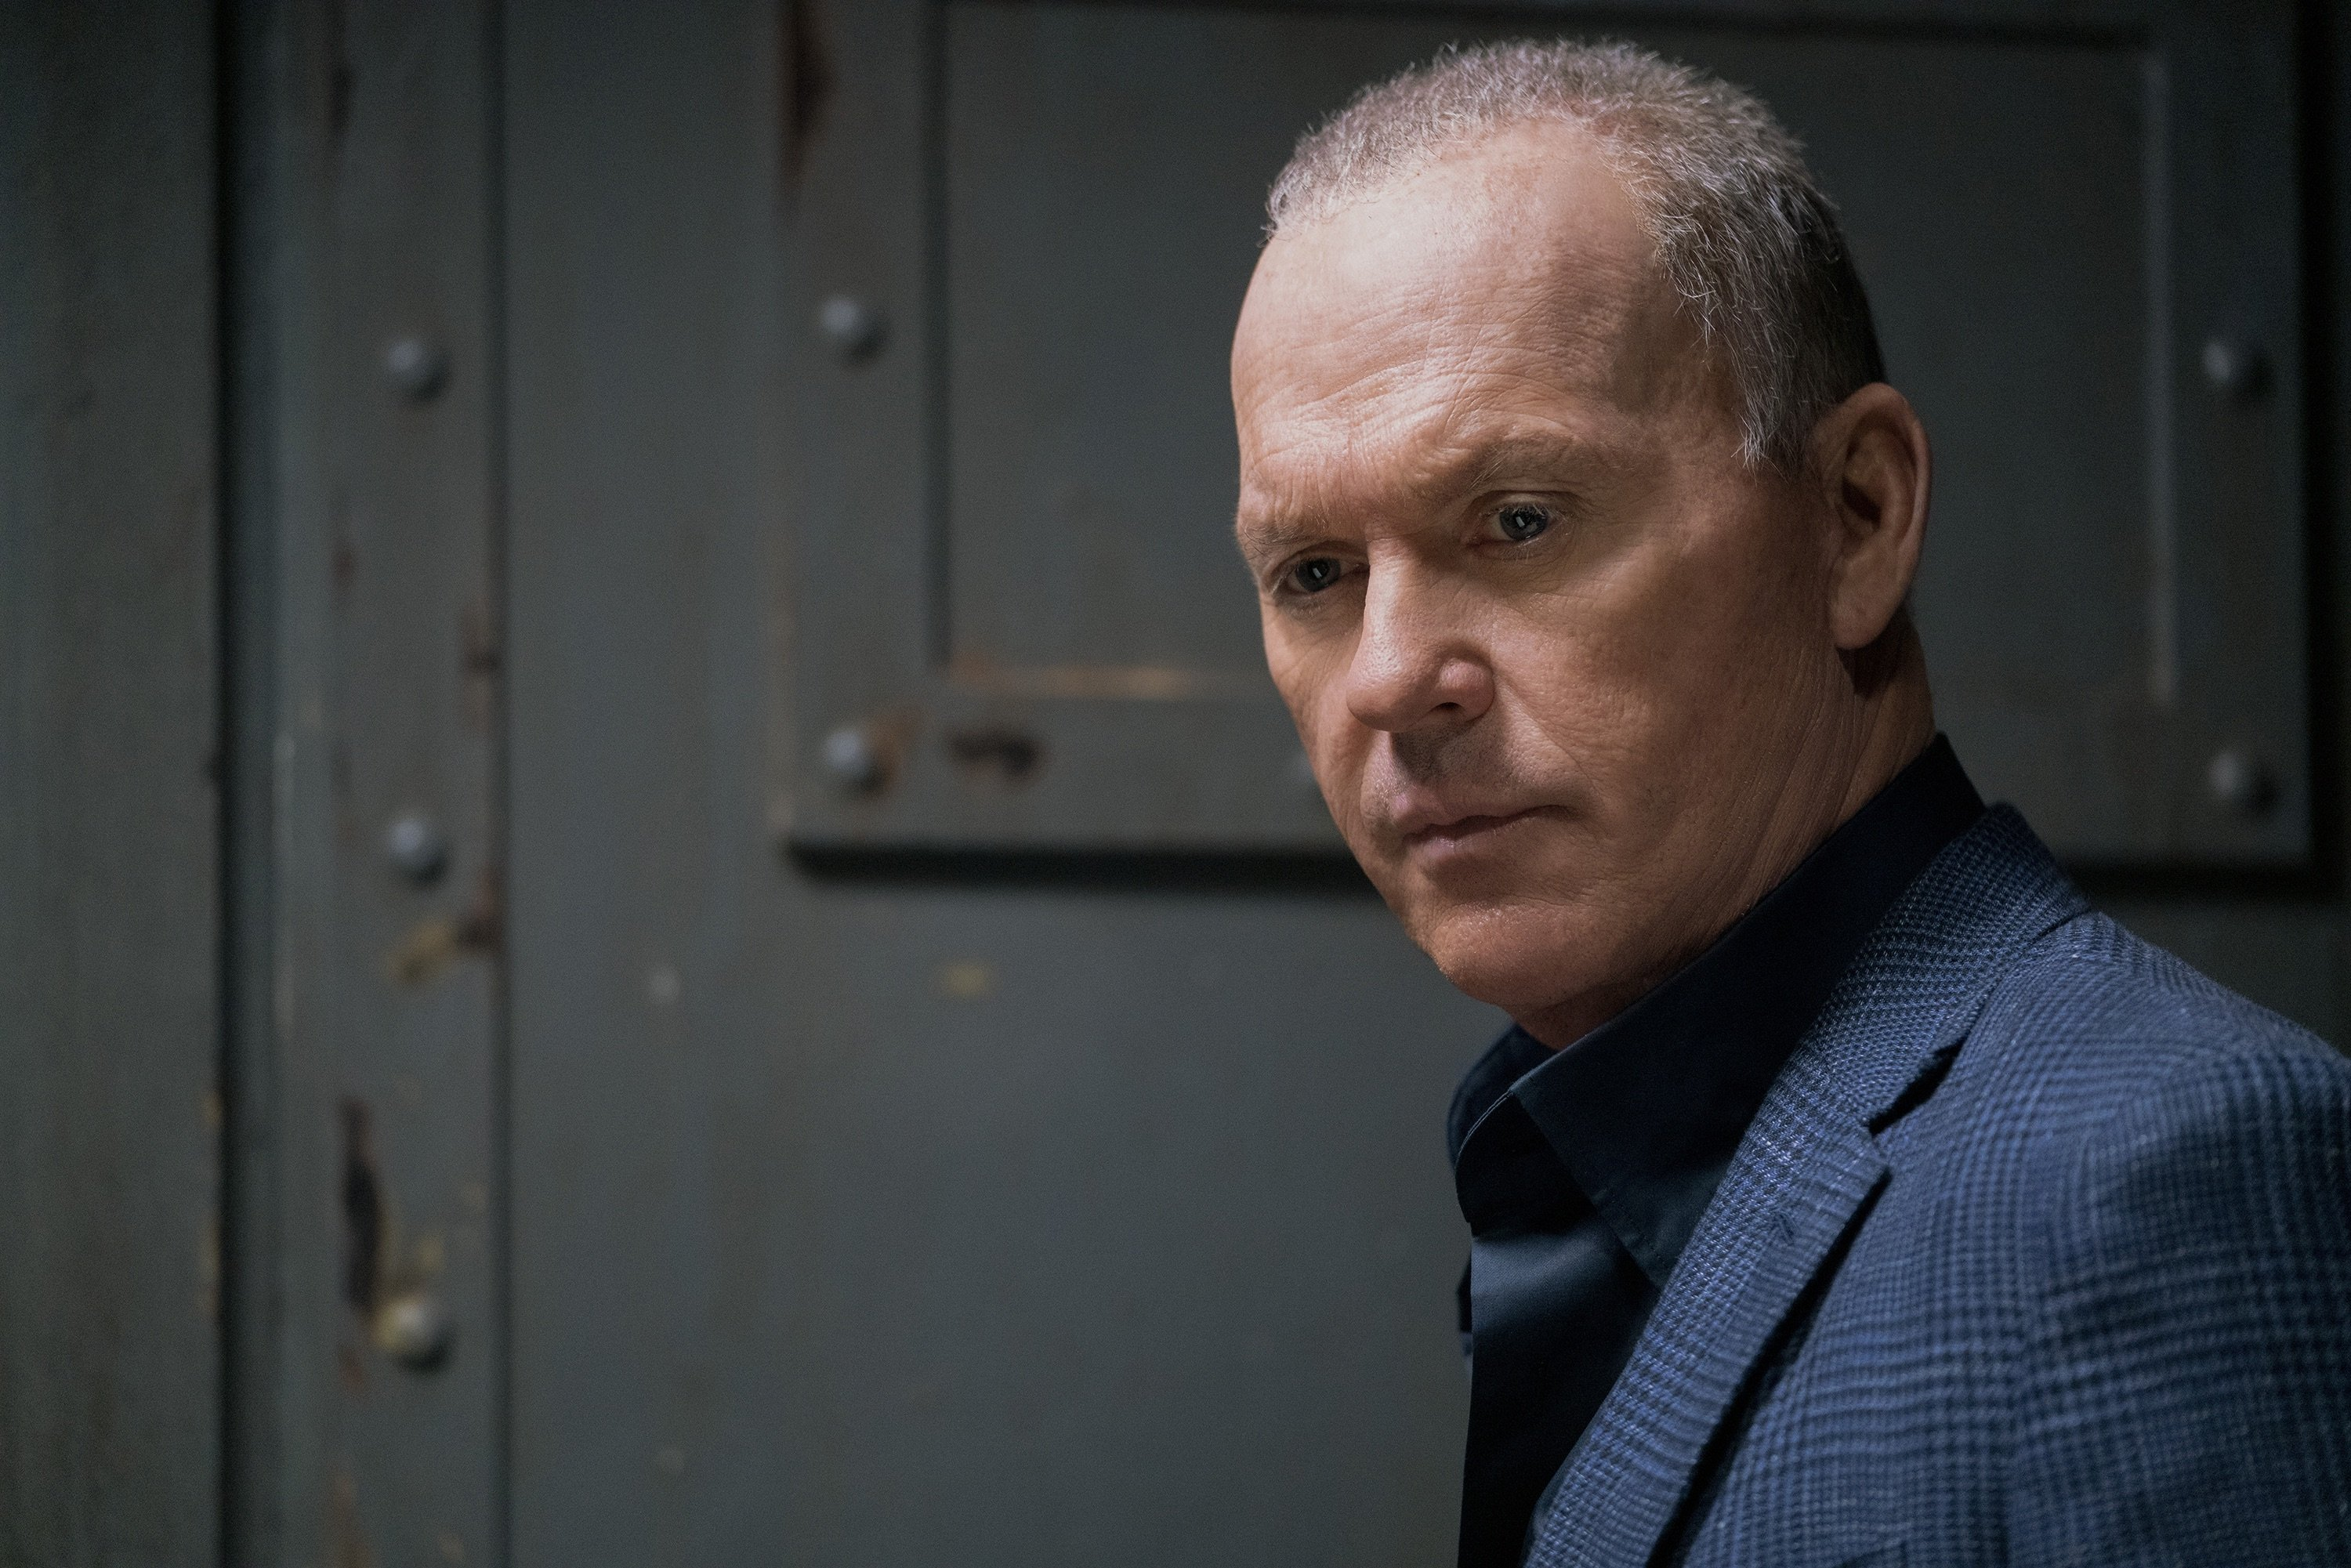 """Michael Keaton as Rembrandt, in a scene from the film """"The Protege."""" (Lionsgate via AP)"""